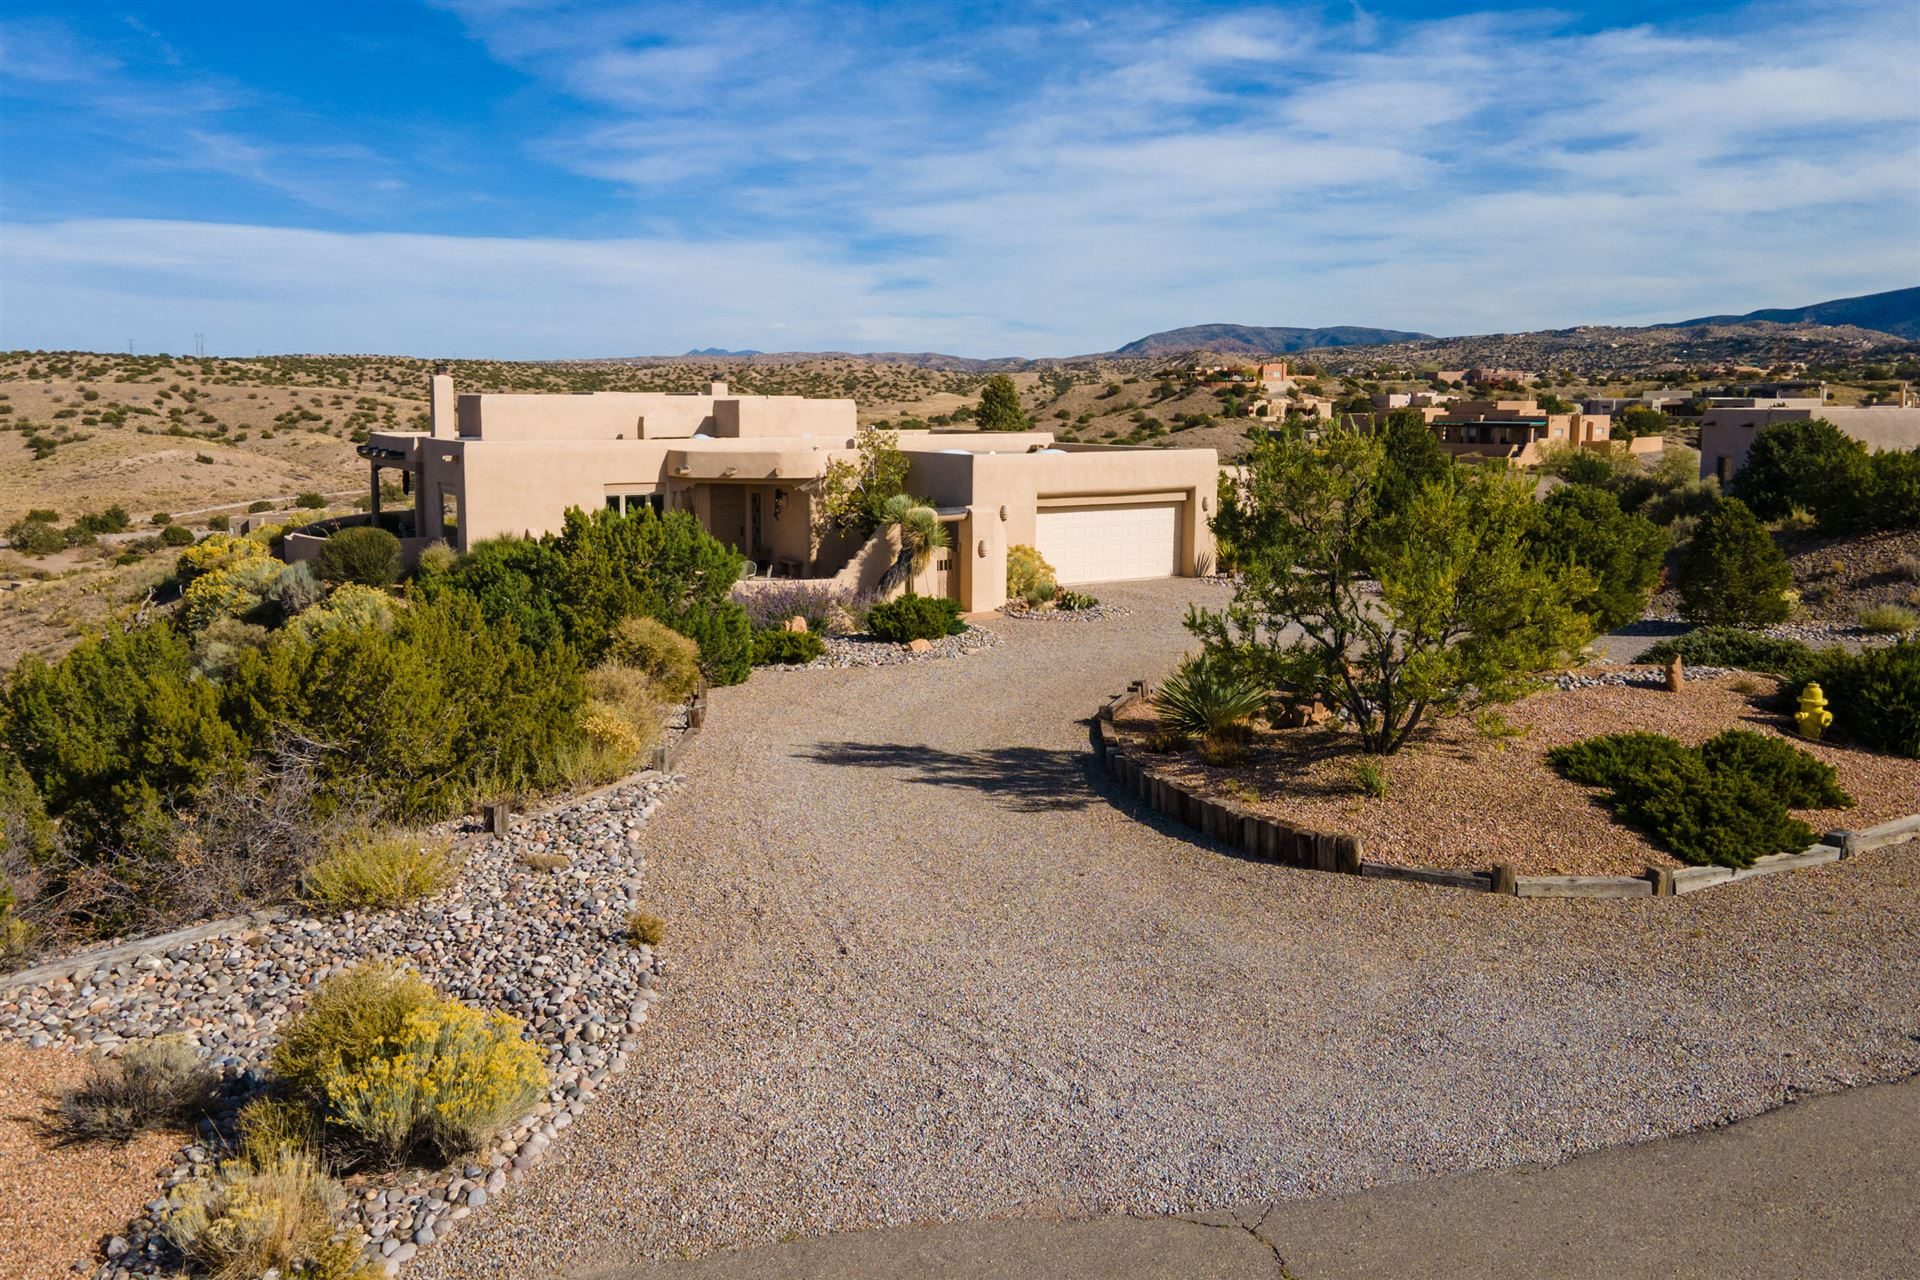 Photo of 6 VALLEY VIEW Court, Placitas, NM 87043 (MLS # 979972)